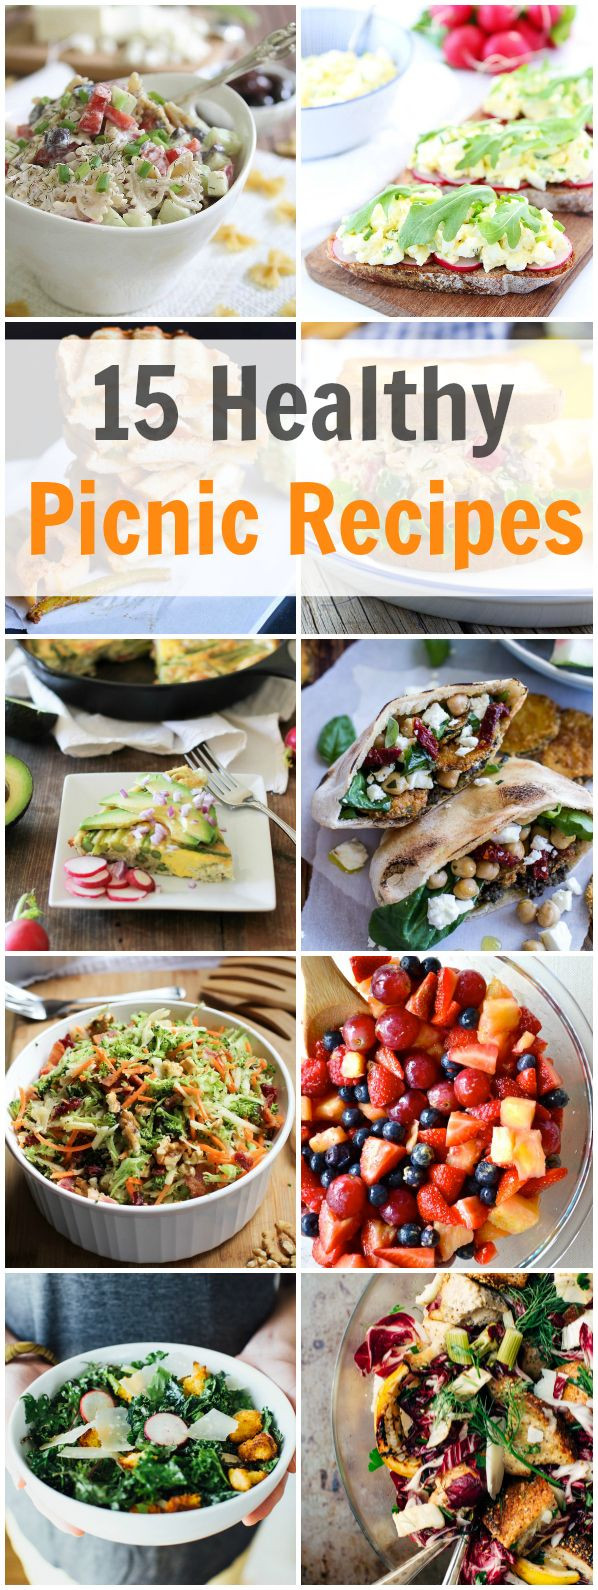 Picnic Dinner Ideas  15 Healthy Picnic Recipes